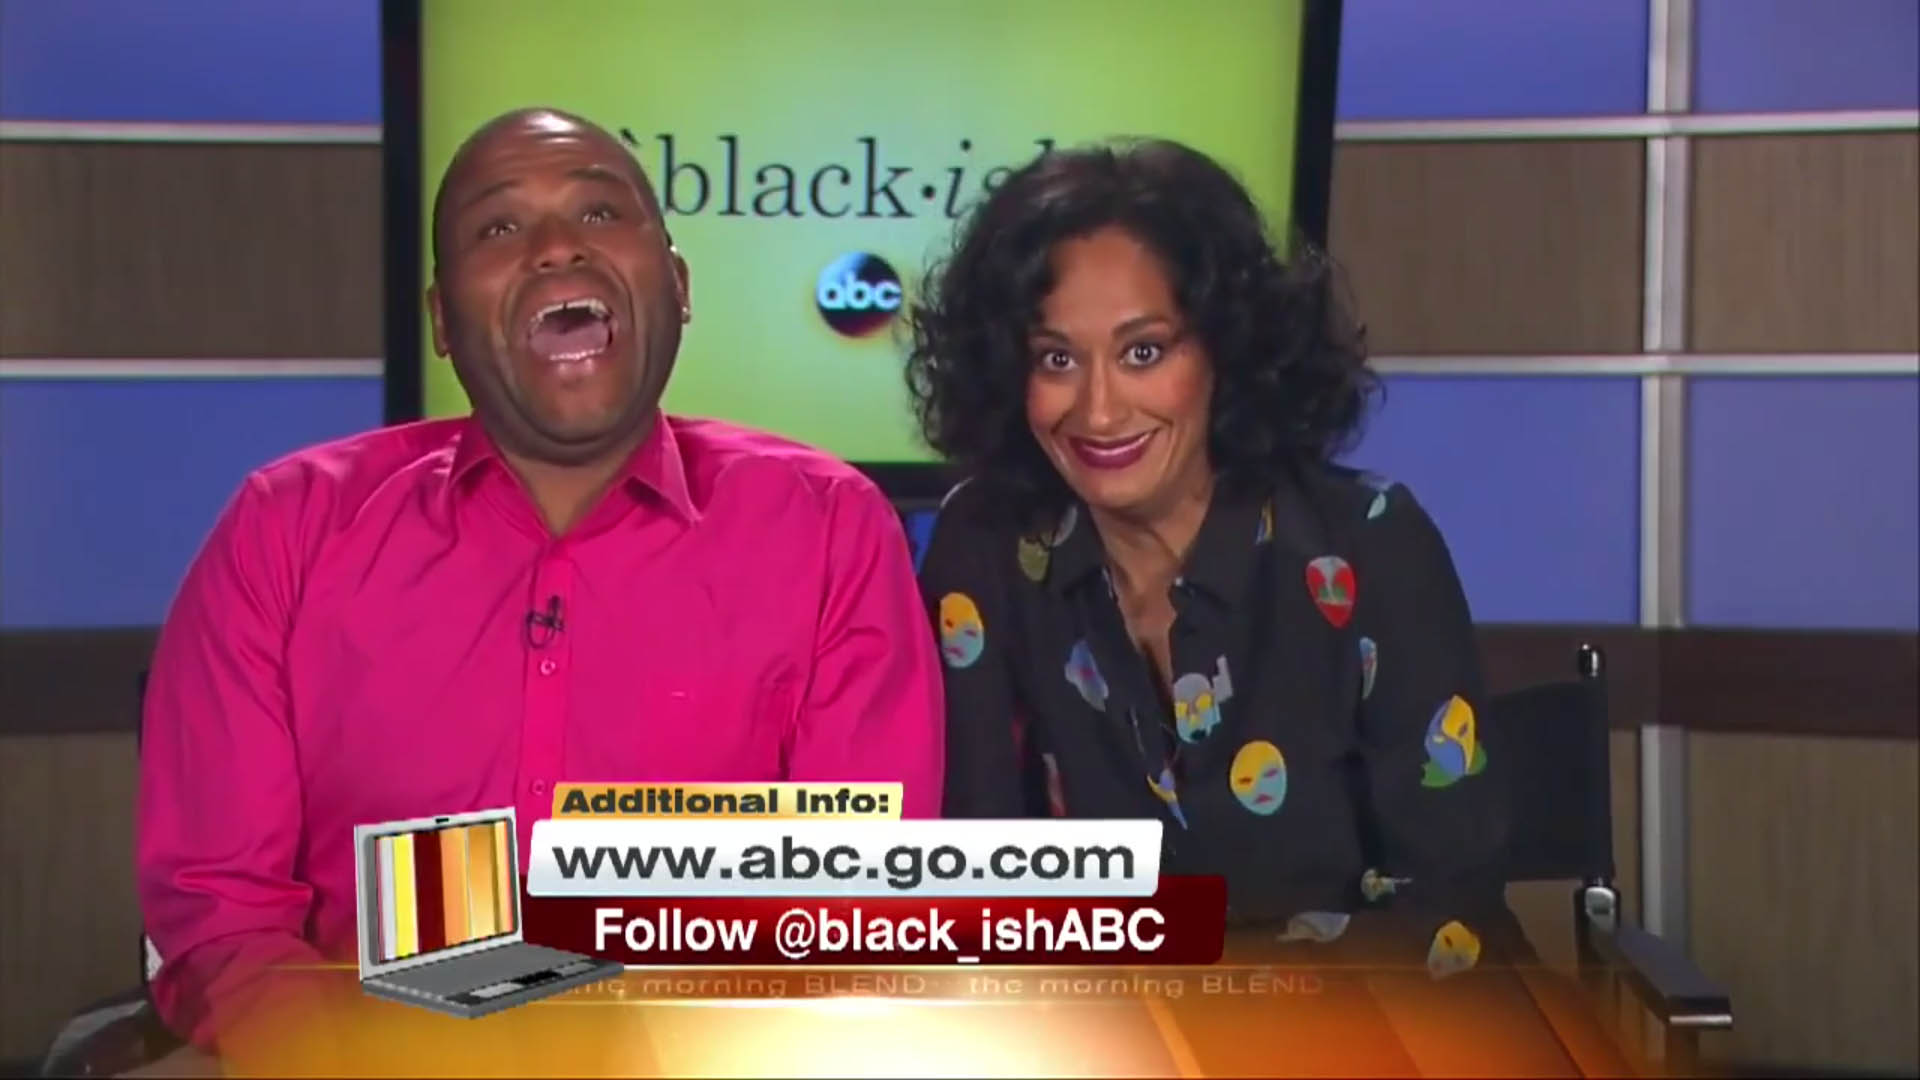 FI Black-ish Interview